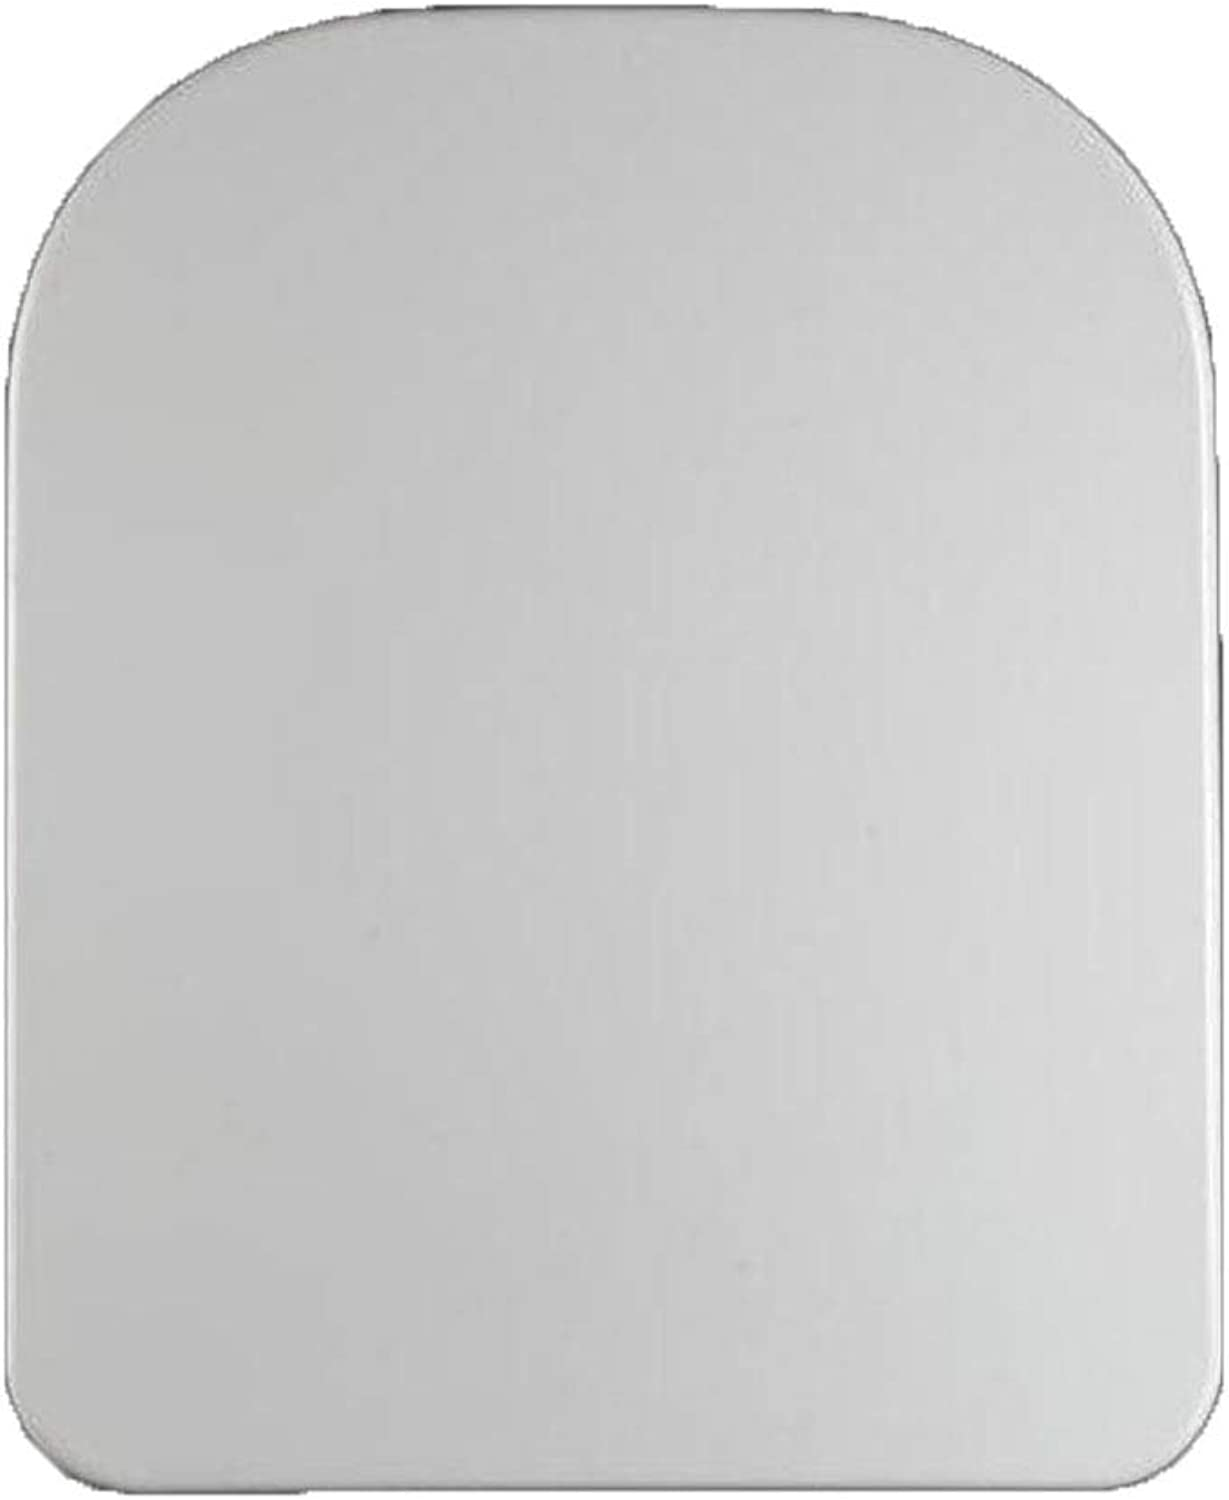 CZTC Toilet Seat Universal Toilet Lid Slow-Close White Square Easy To Install Toilet Seat Cover For Bathroom And Washroom (Size   42-47  34.5CM)